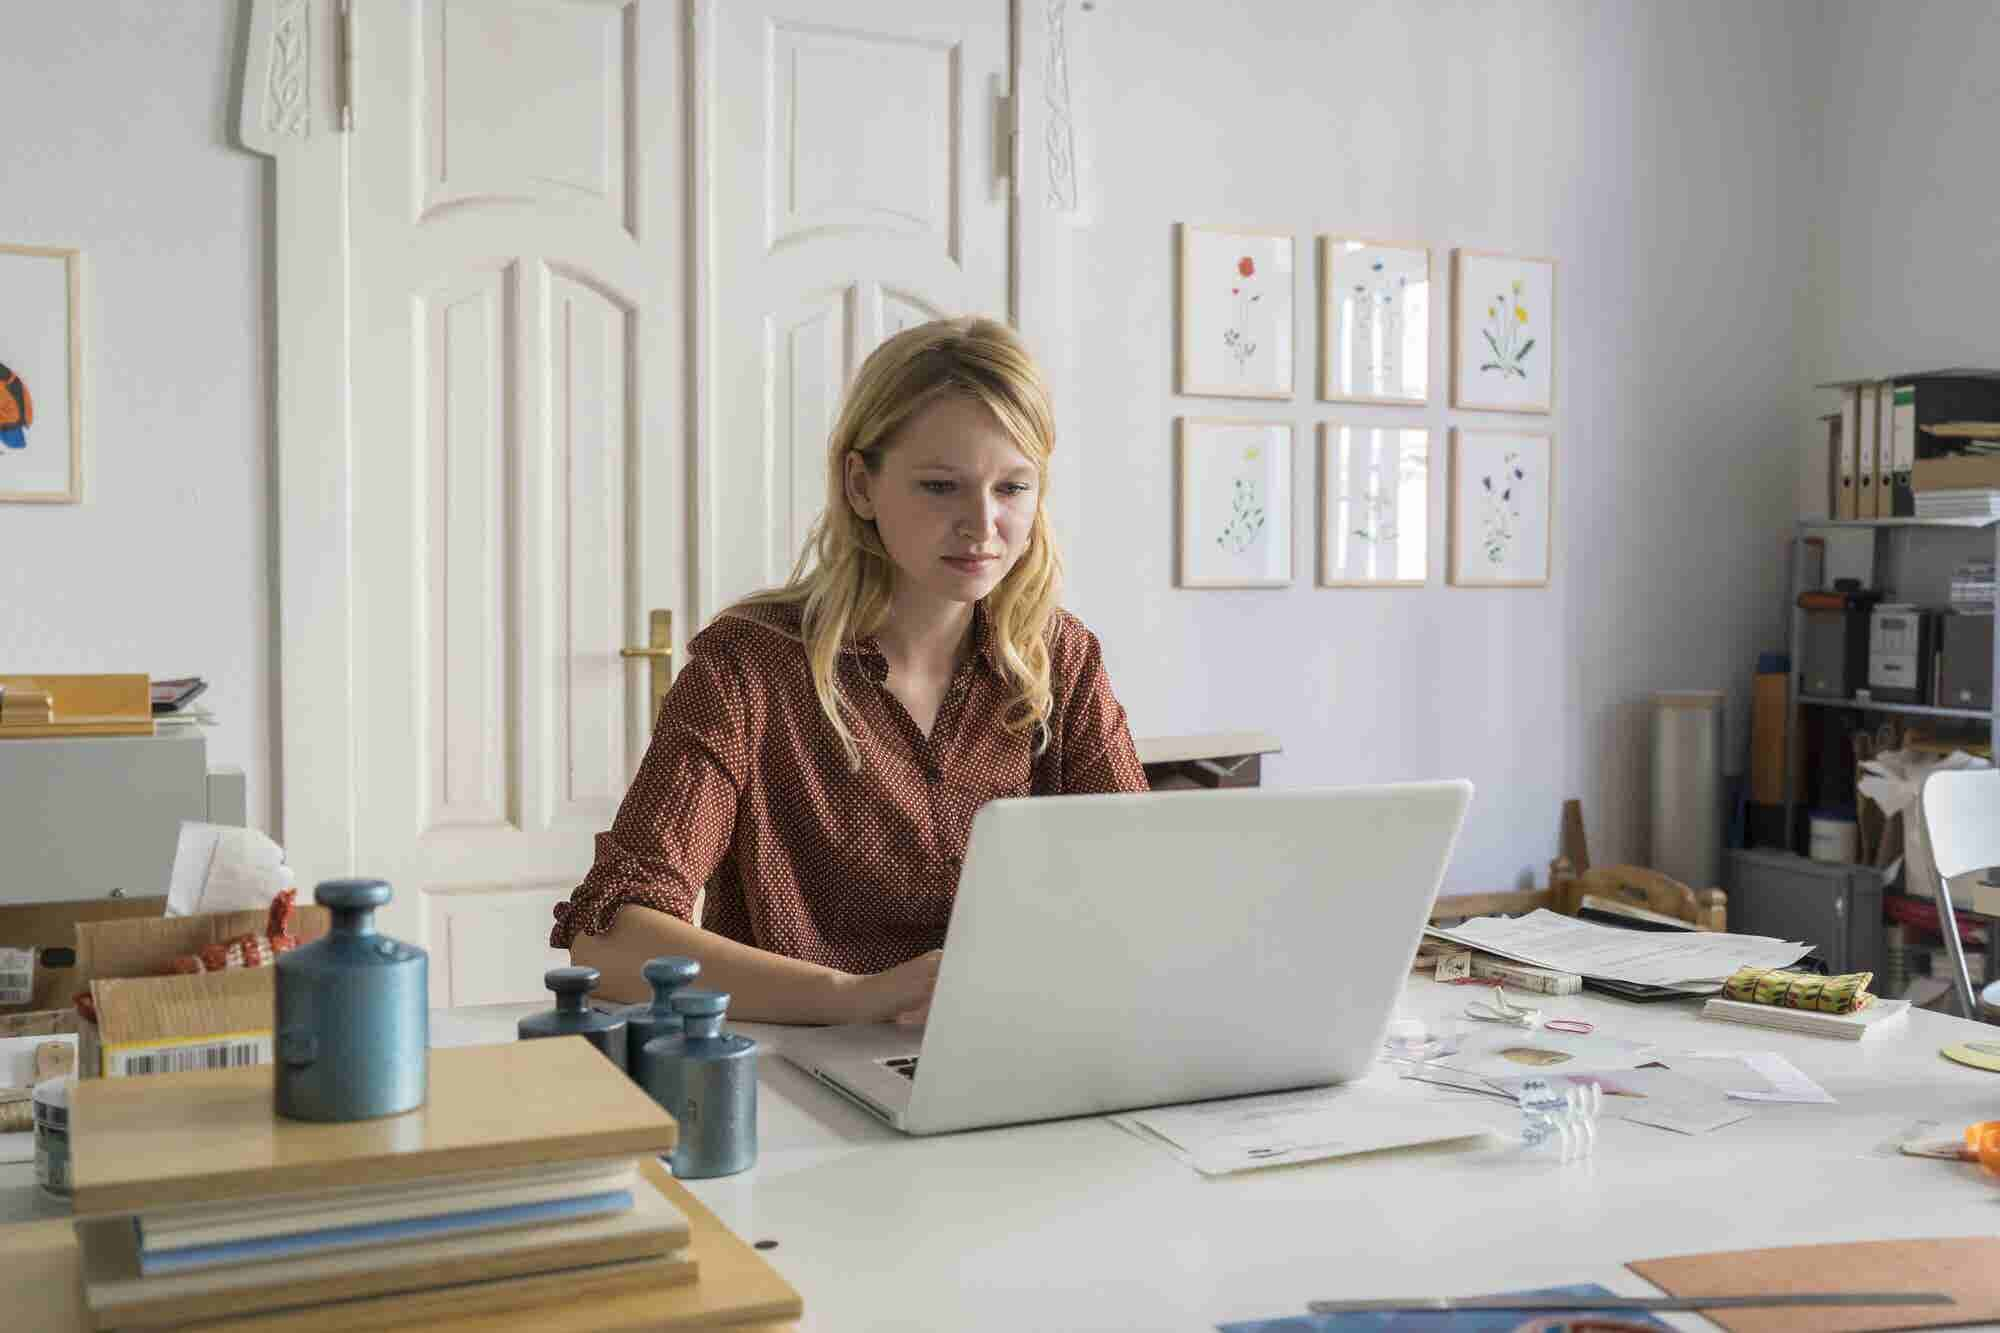 4 Ways to Successfully Turn Your Day Job into a Side Hustle That Earns You Passive Income